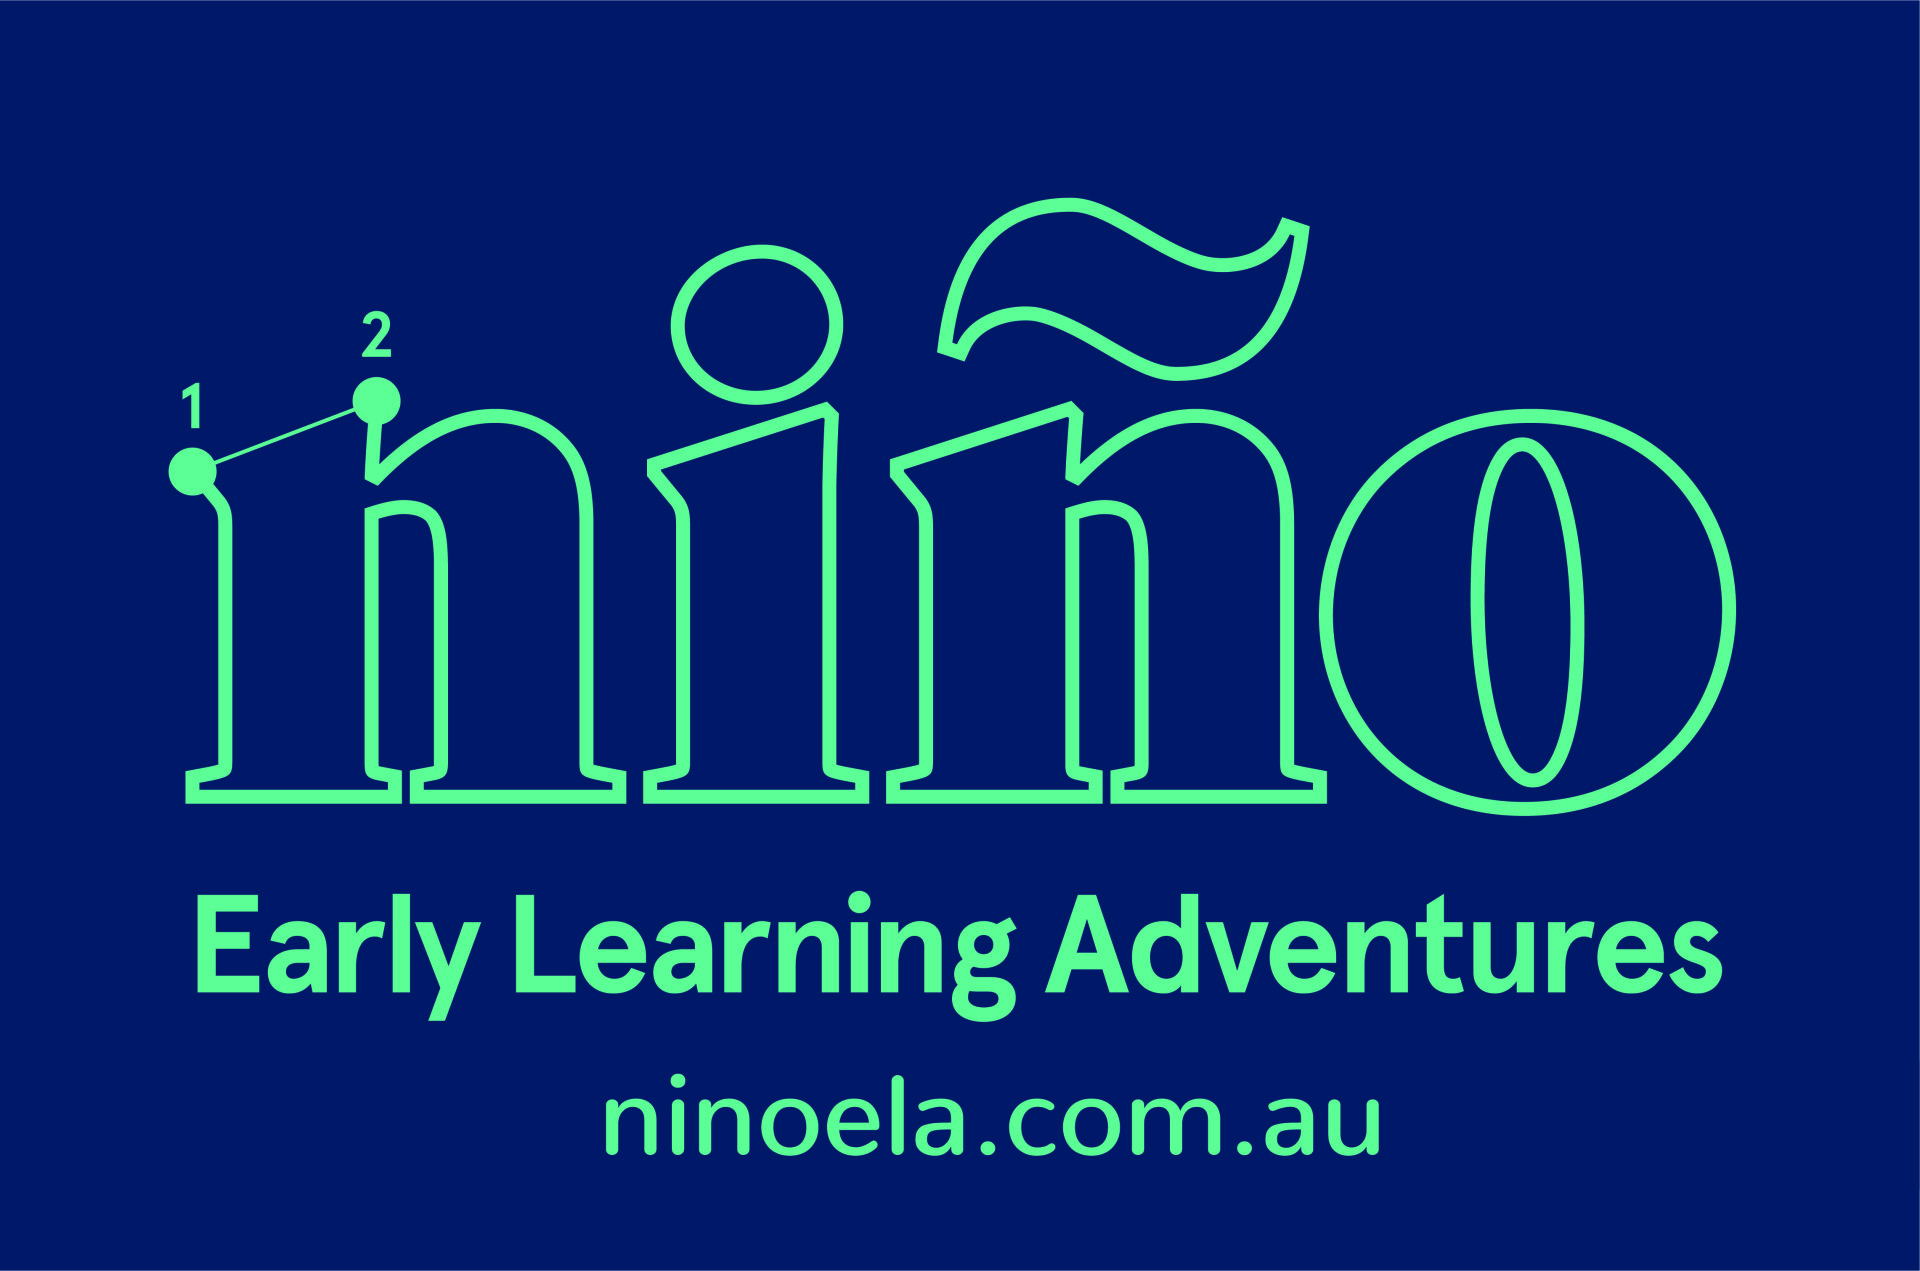 NINO Early Learning Adventures